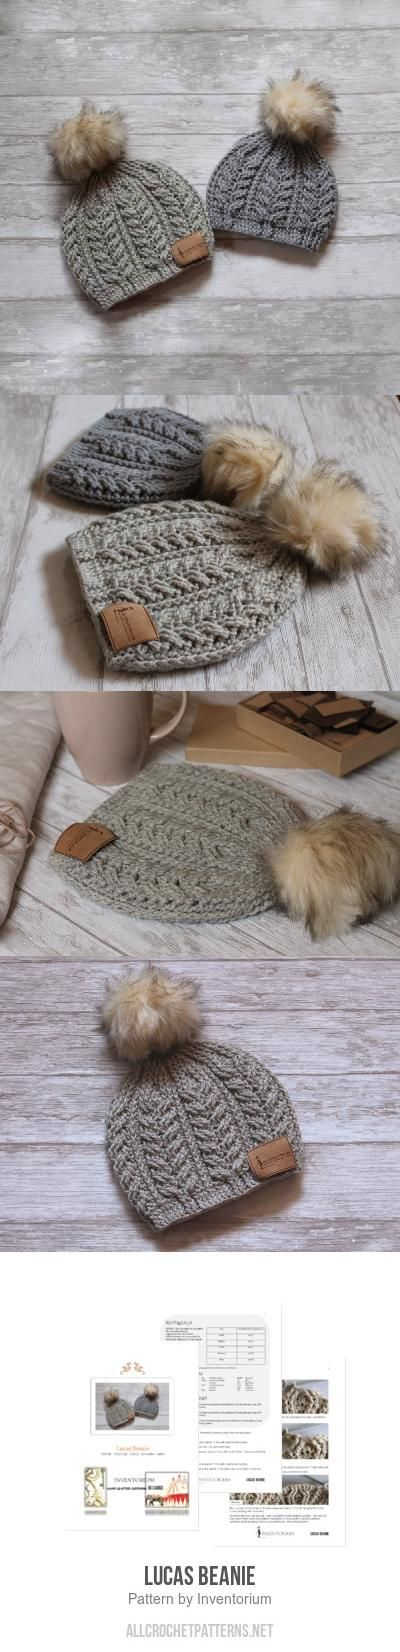 Lucas Beanie crochet pattern by Inventorium | Crochet | Pinterest ...